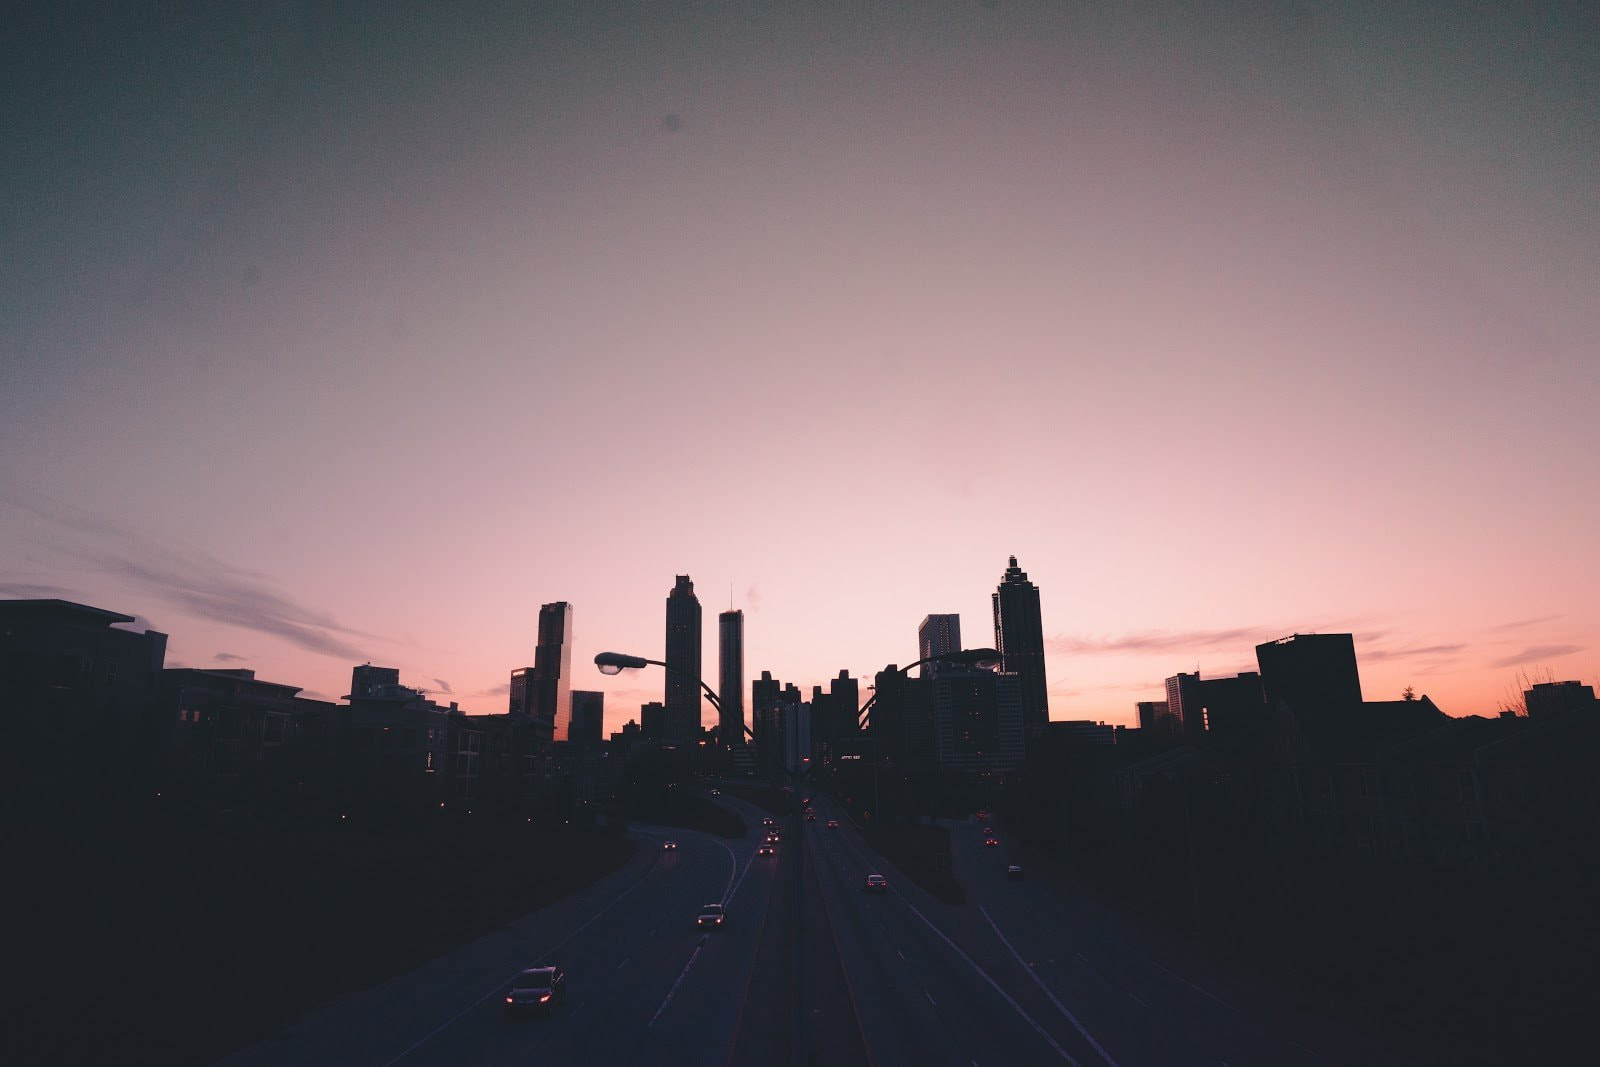 Silhouette of a city skyline and a road by Joe Yates